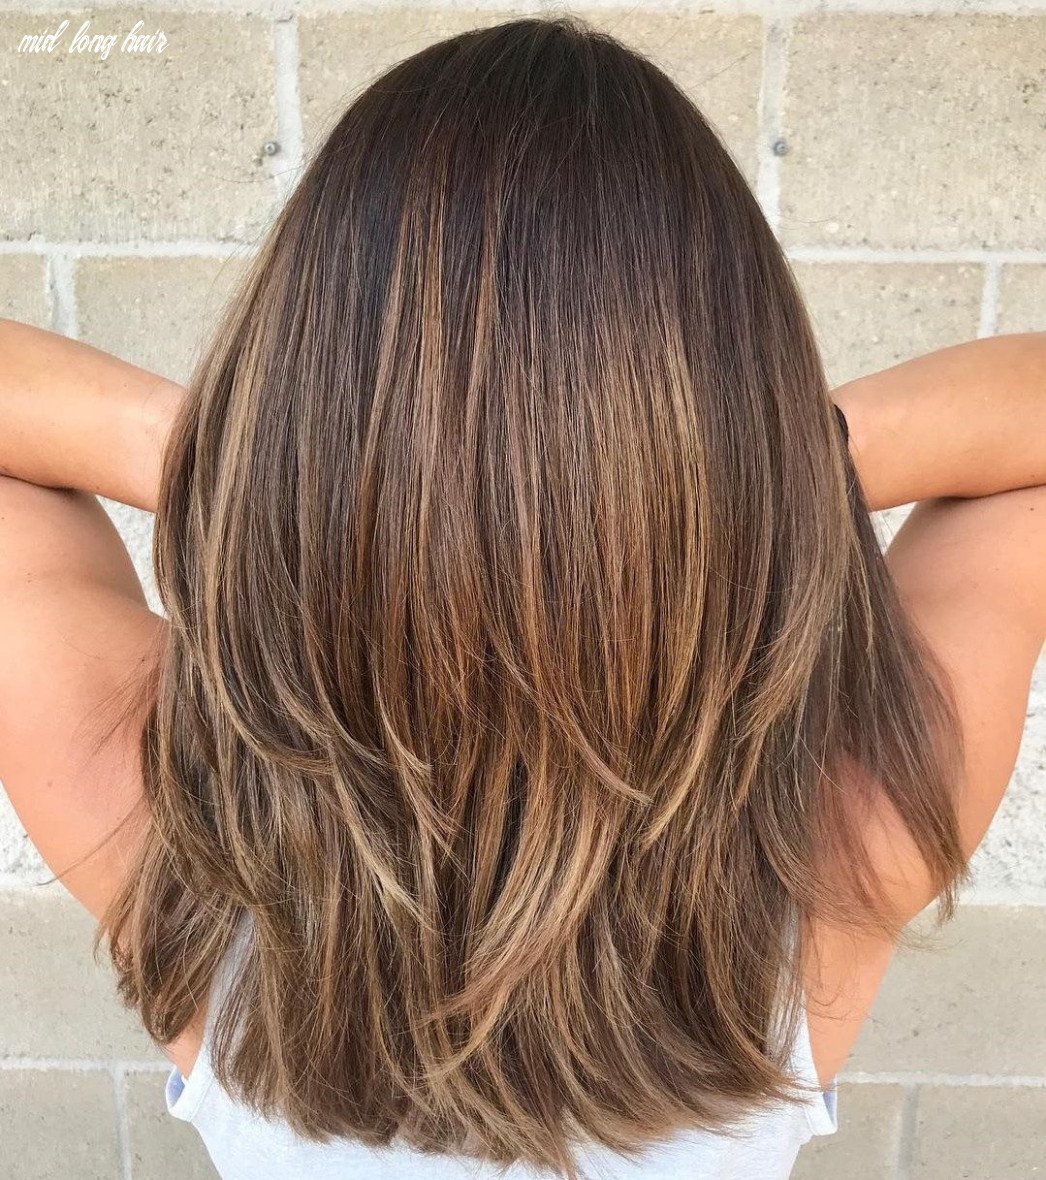 Pin on hairstyles mid long hair